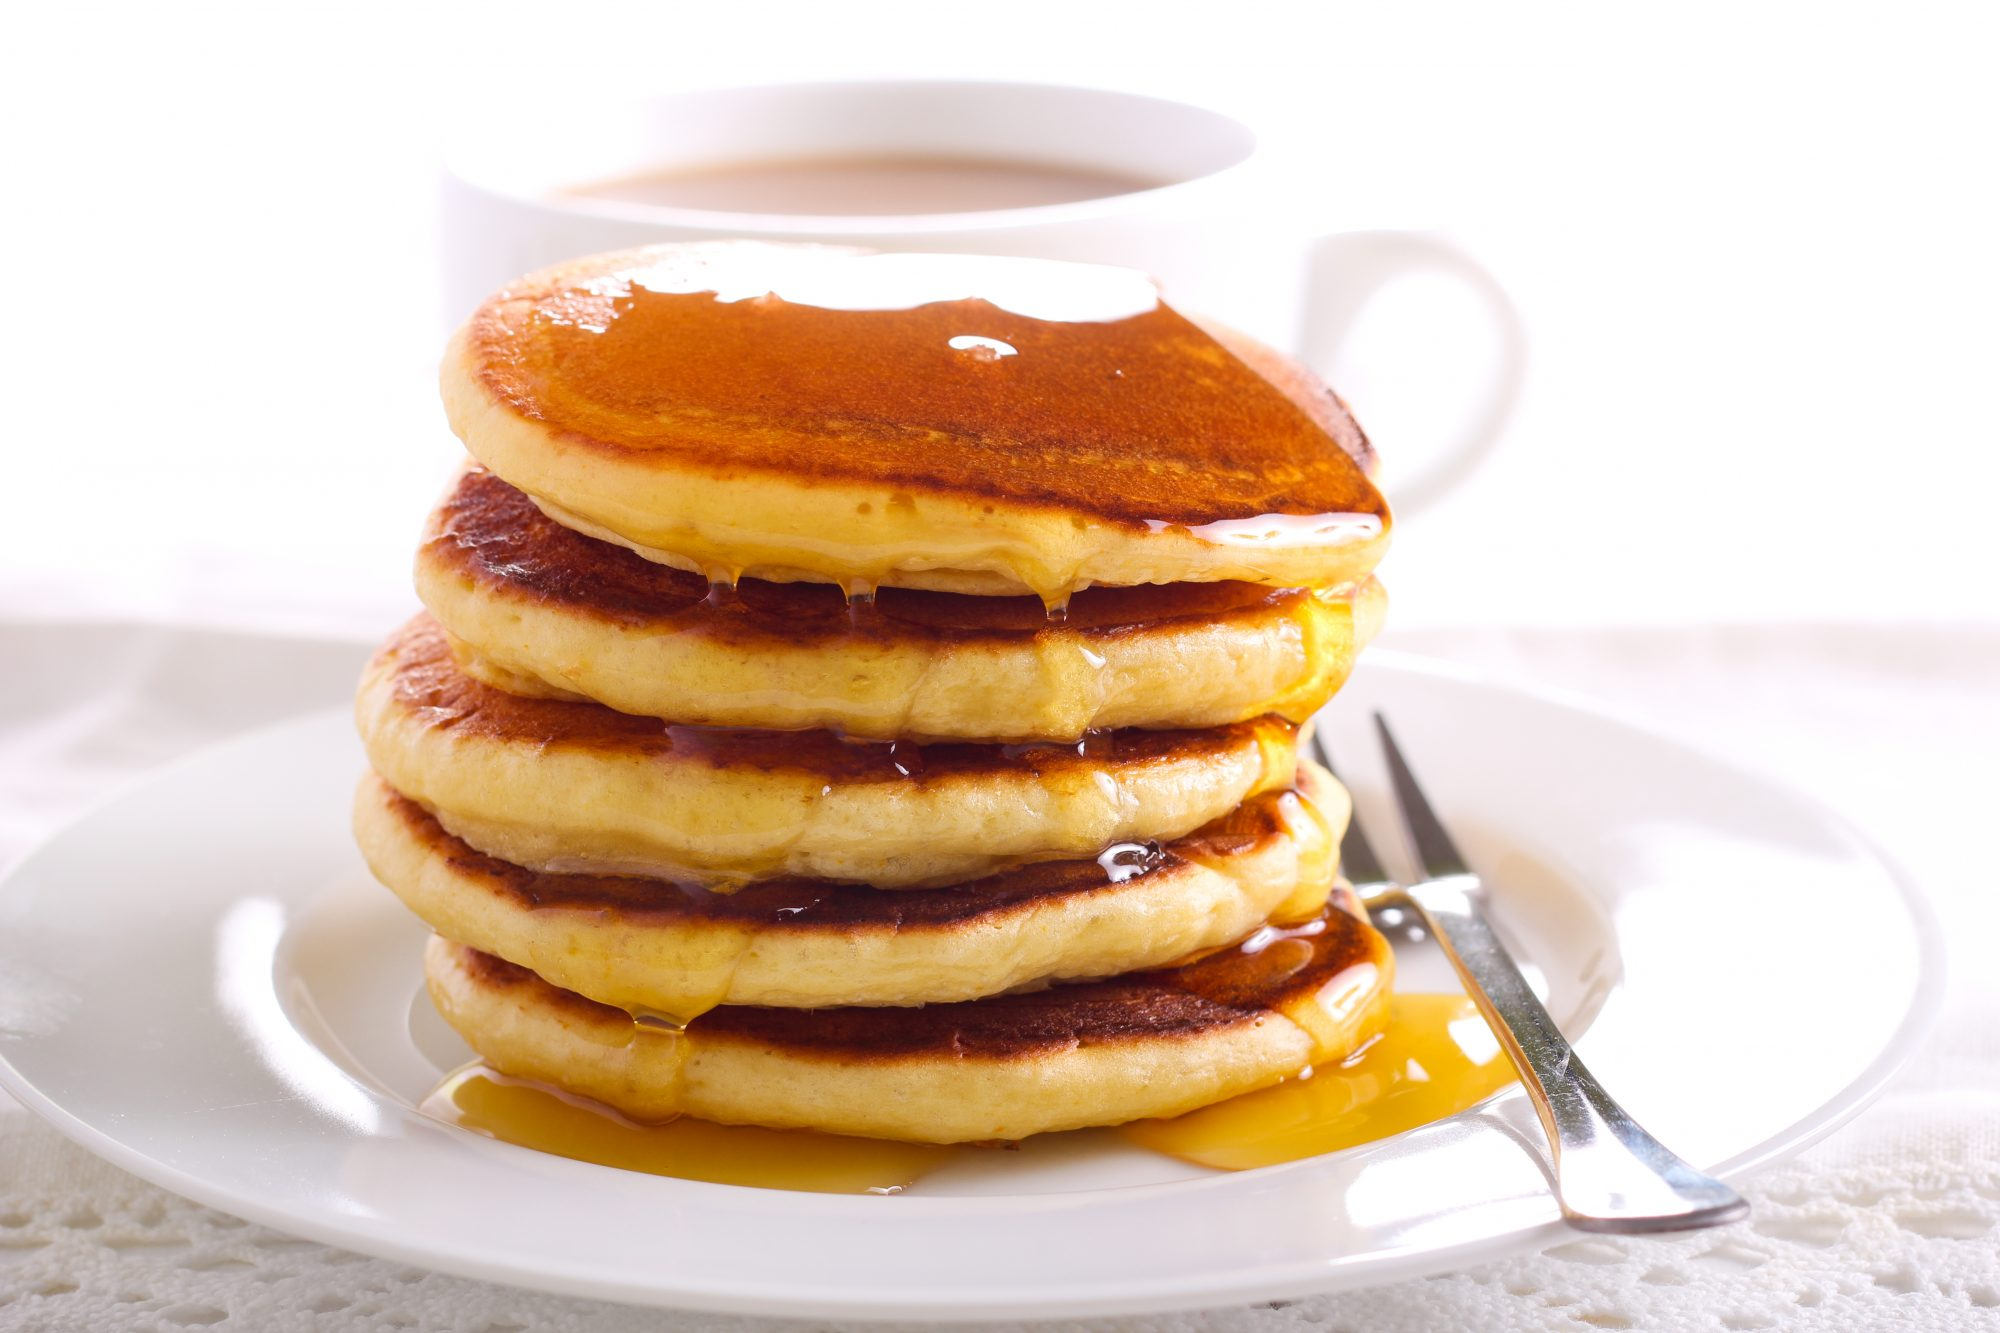 Ree Drummond's Secret Ingredient for the Fluffiest Pancakes Ever